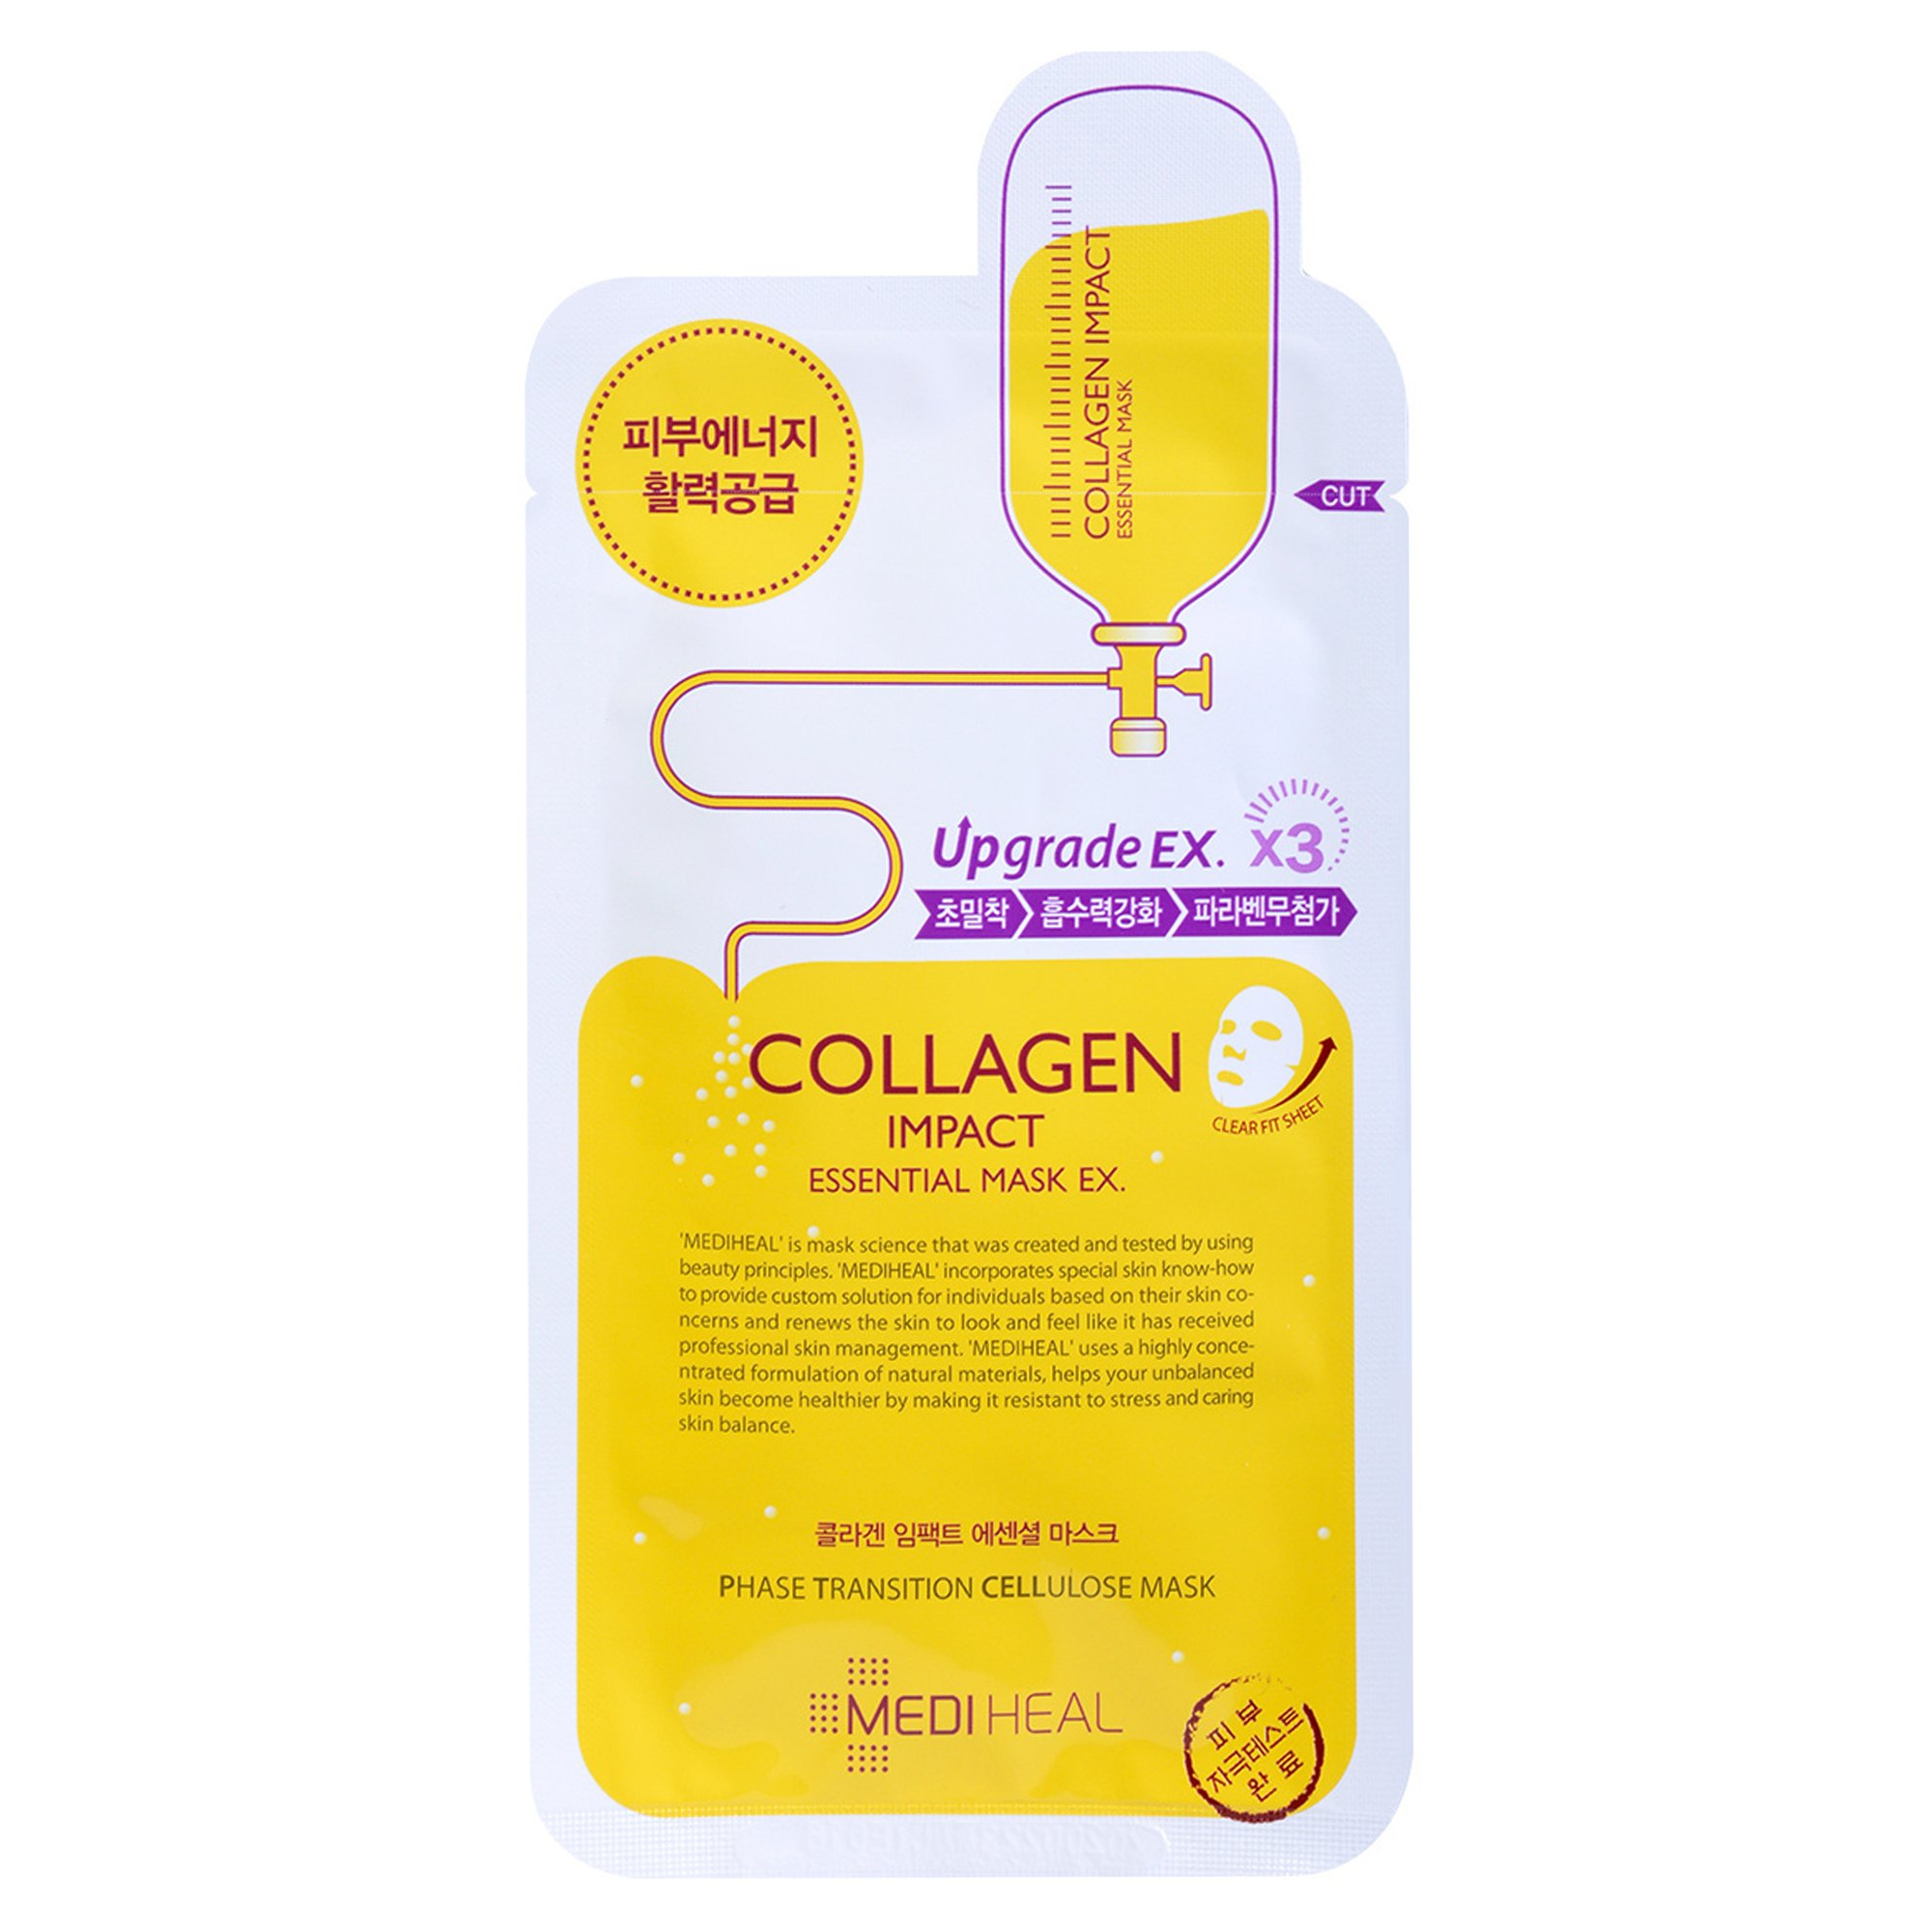 mat-na-mediheal-collagen-impact-essential-mask-e-review-thanh-phan-gia-cong-dung-18